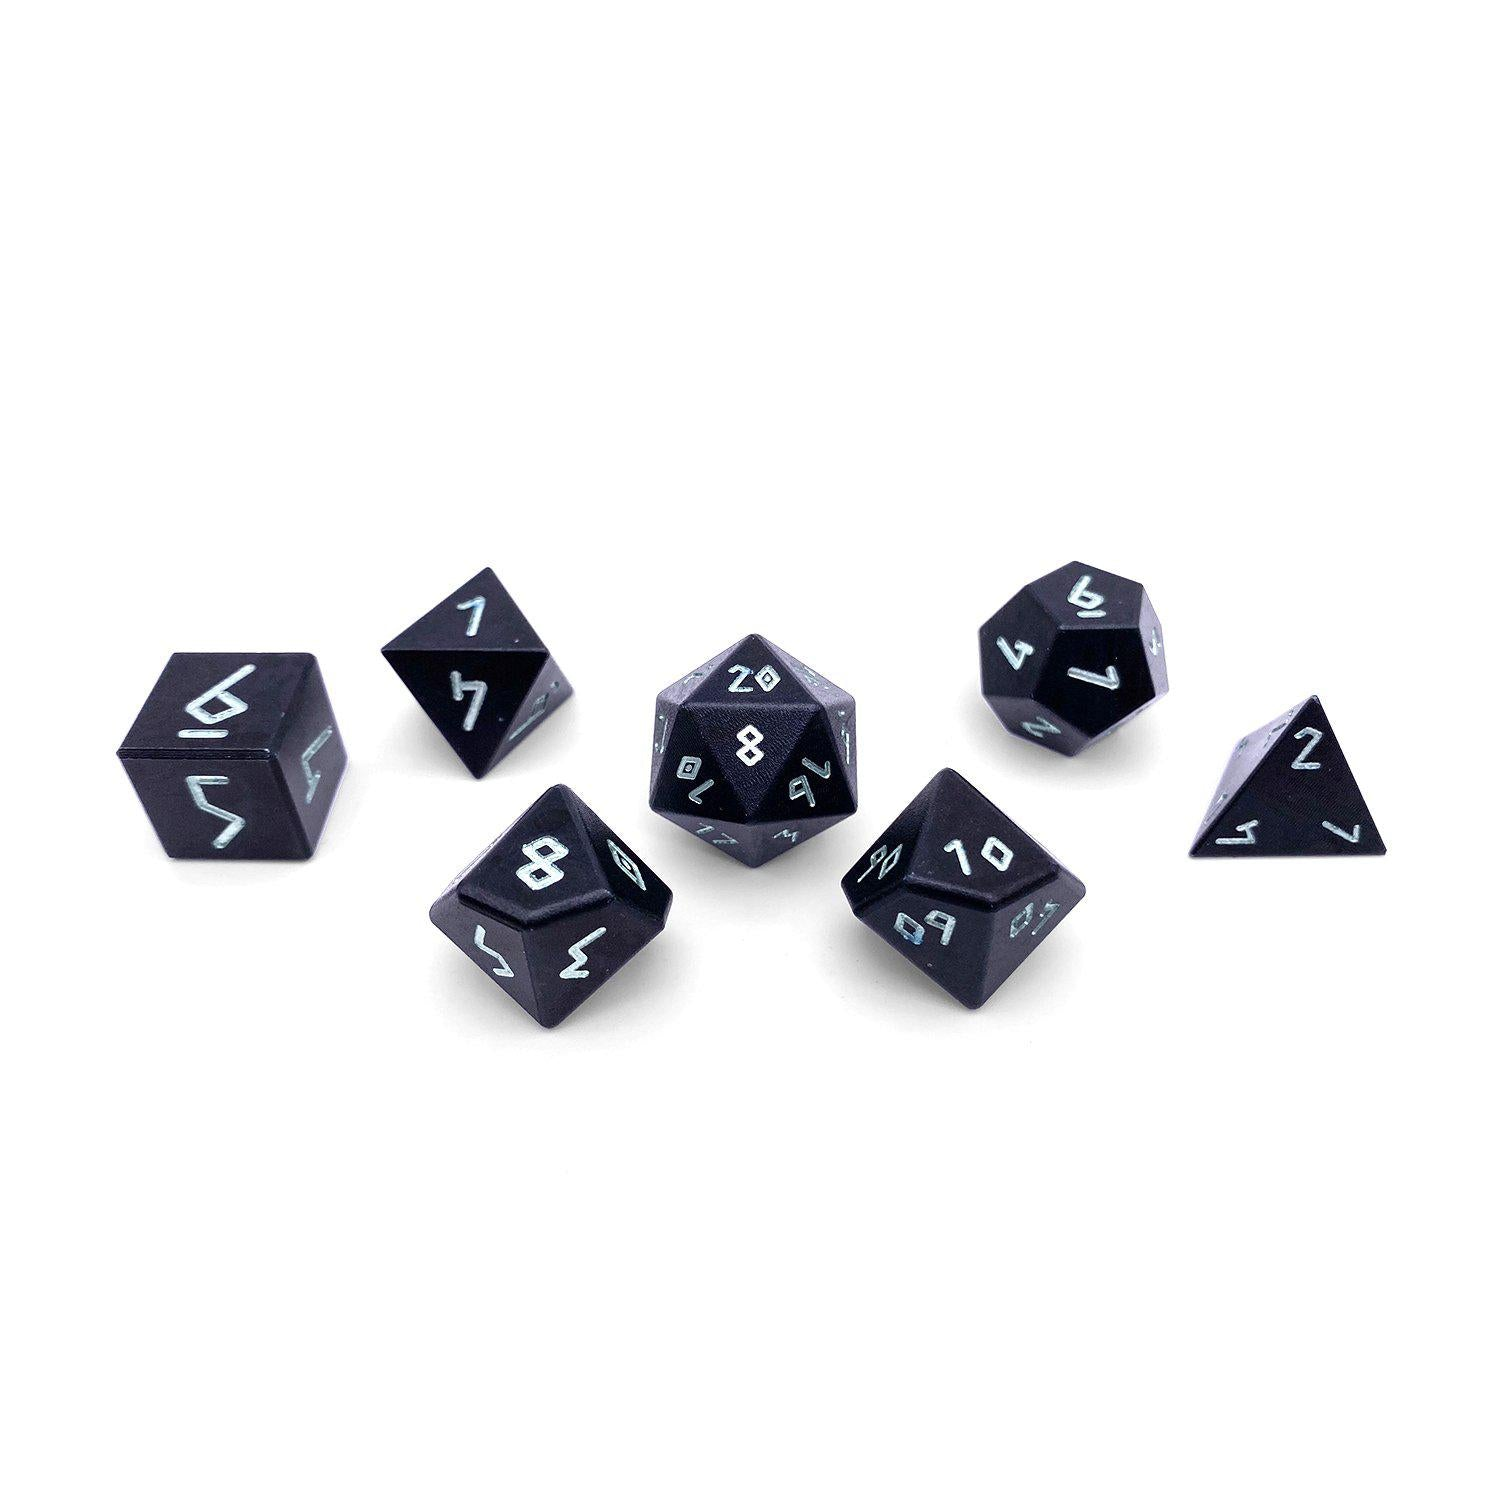 Orb Series - Orb of Venom - Set of 7 RPG Dice by Norse Foundry Precision Polyhedral Dice Set